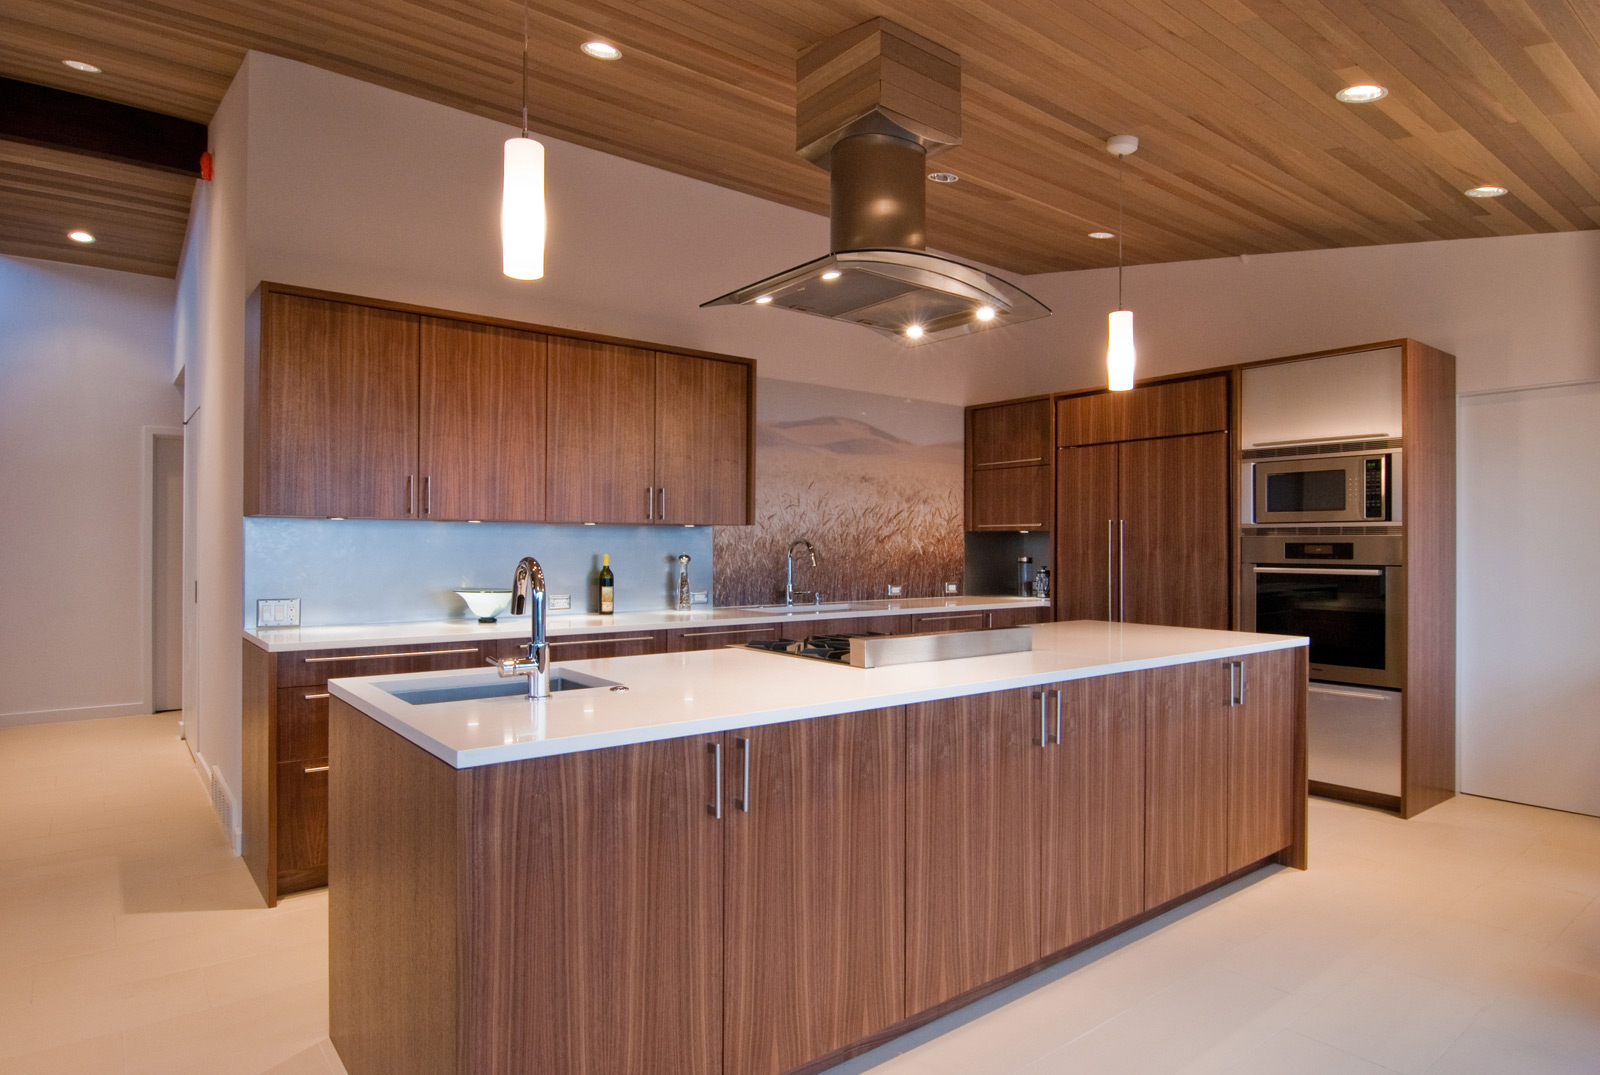 5 Modern Kitchen Designs & Principles | Build Blog